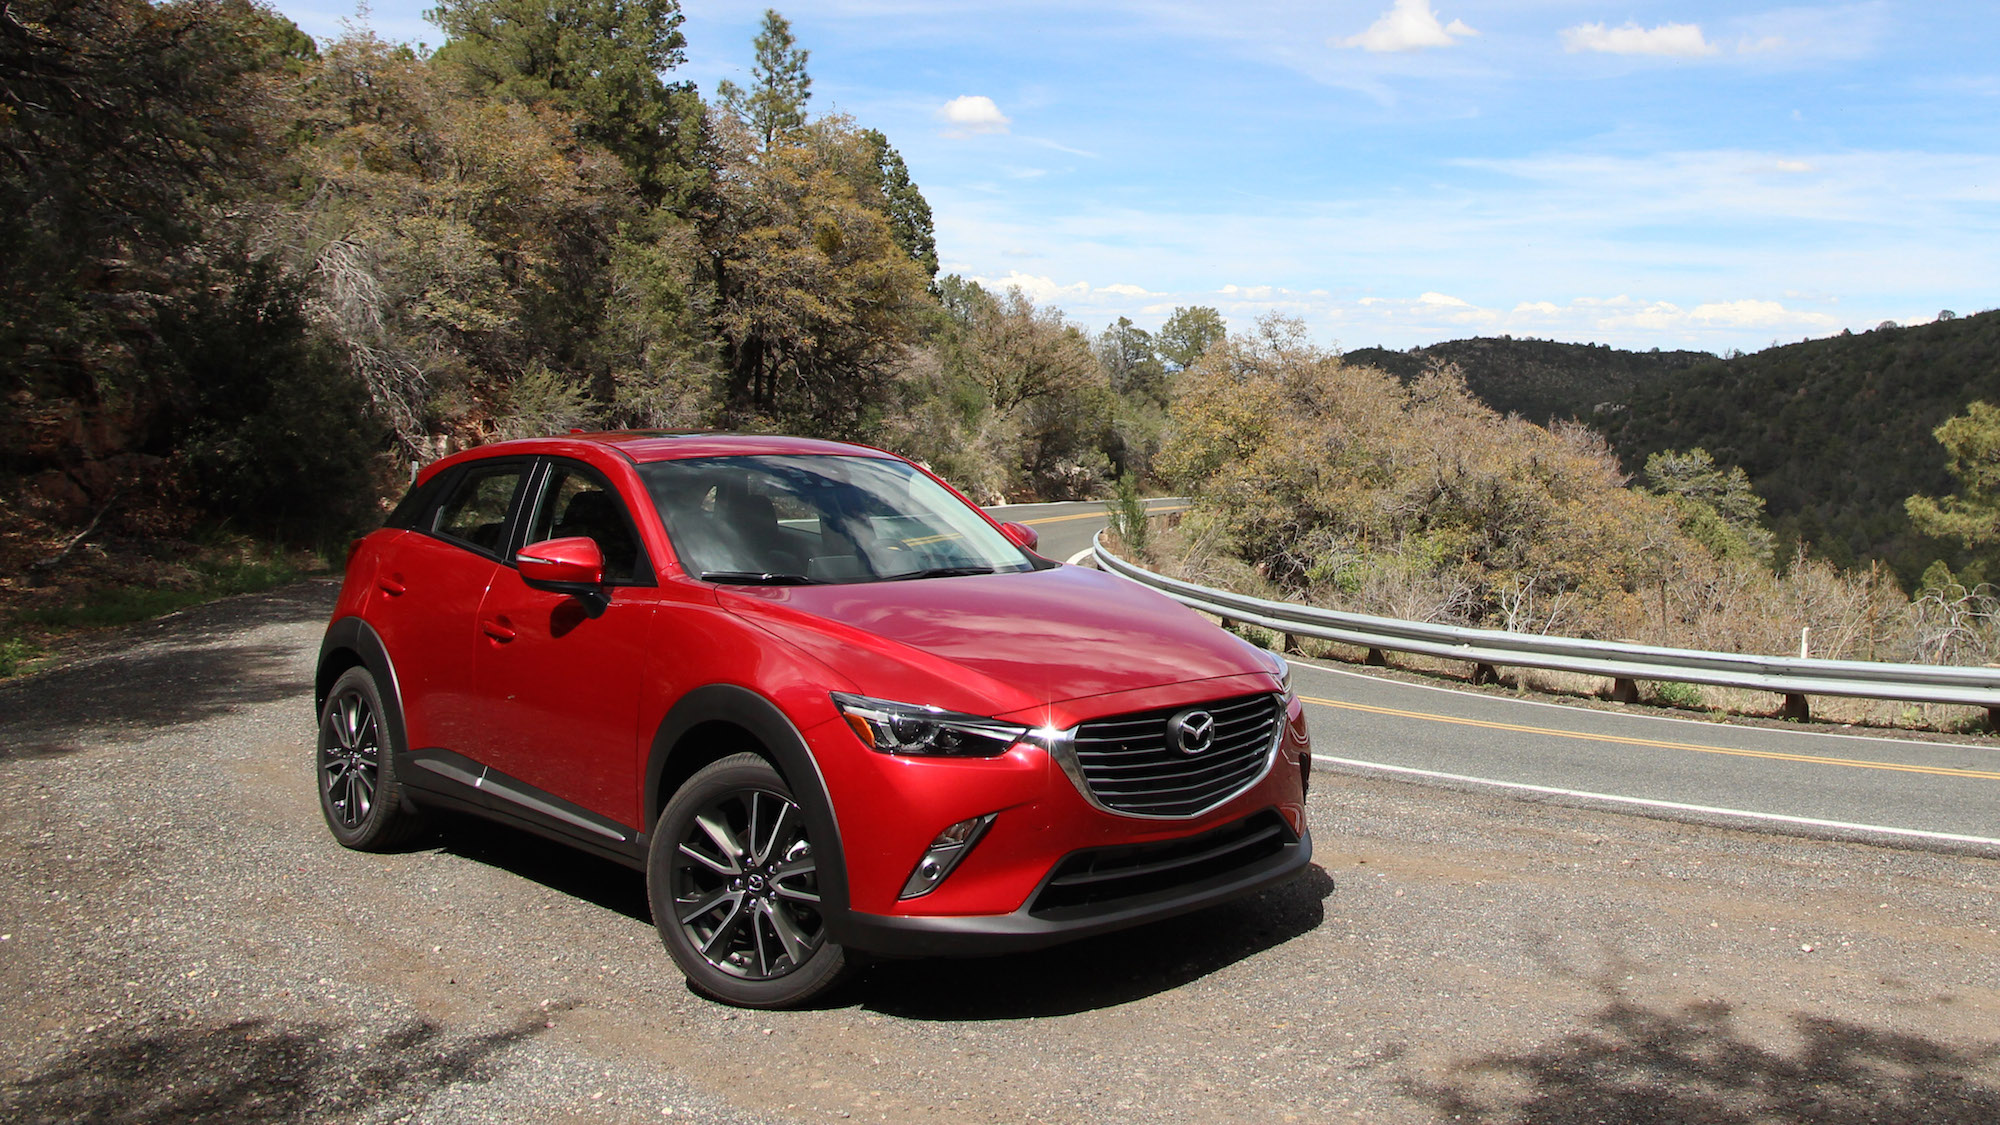 2016 mazda cx 3 first drive. Black Bedroom Furniture Sets. Home Design Ideas